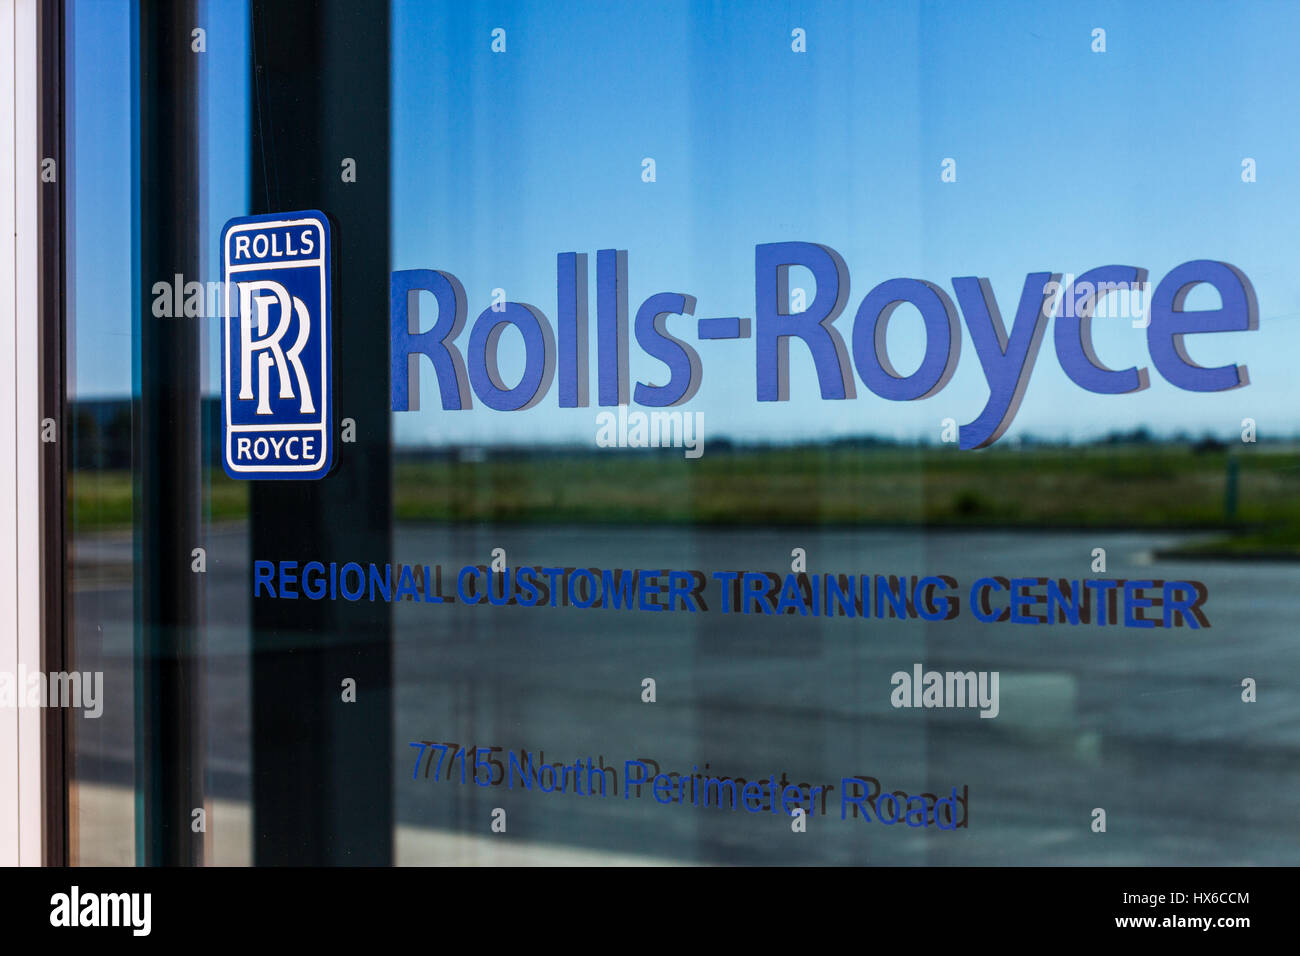 Indianapolis - Circa October 2016: Rolls-Royce Corporation Regional Customer Training Center. Rolls-Royce is a Global - Stock Image